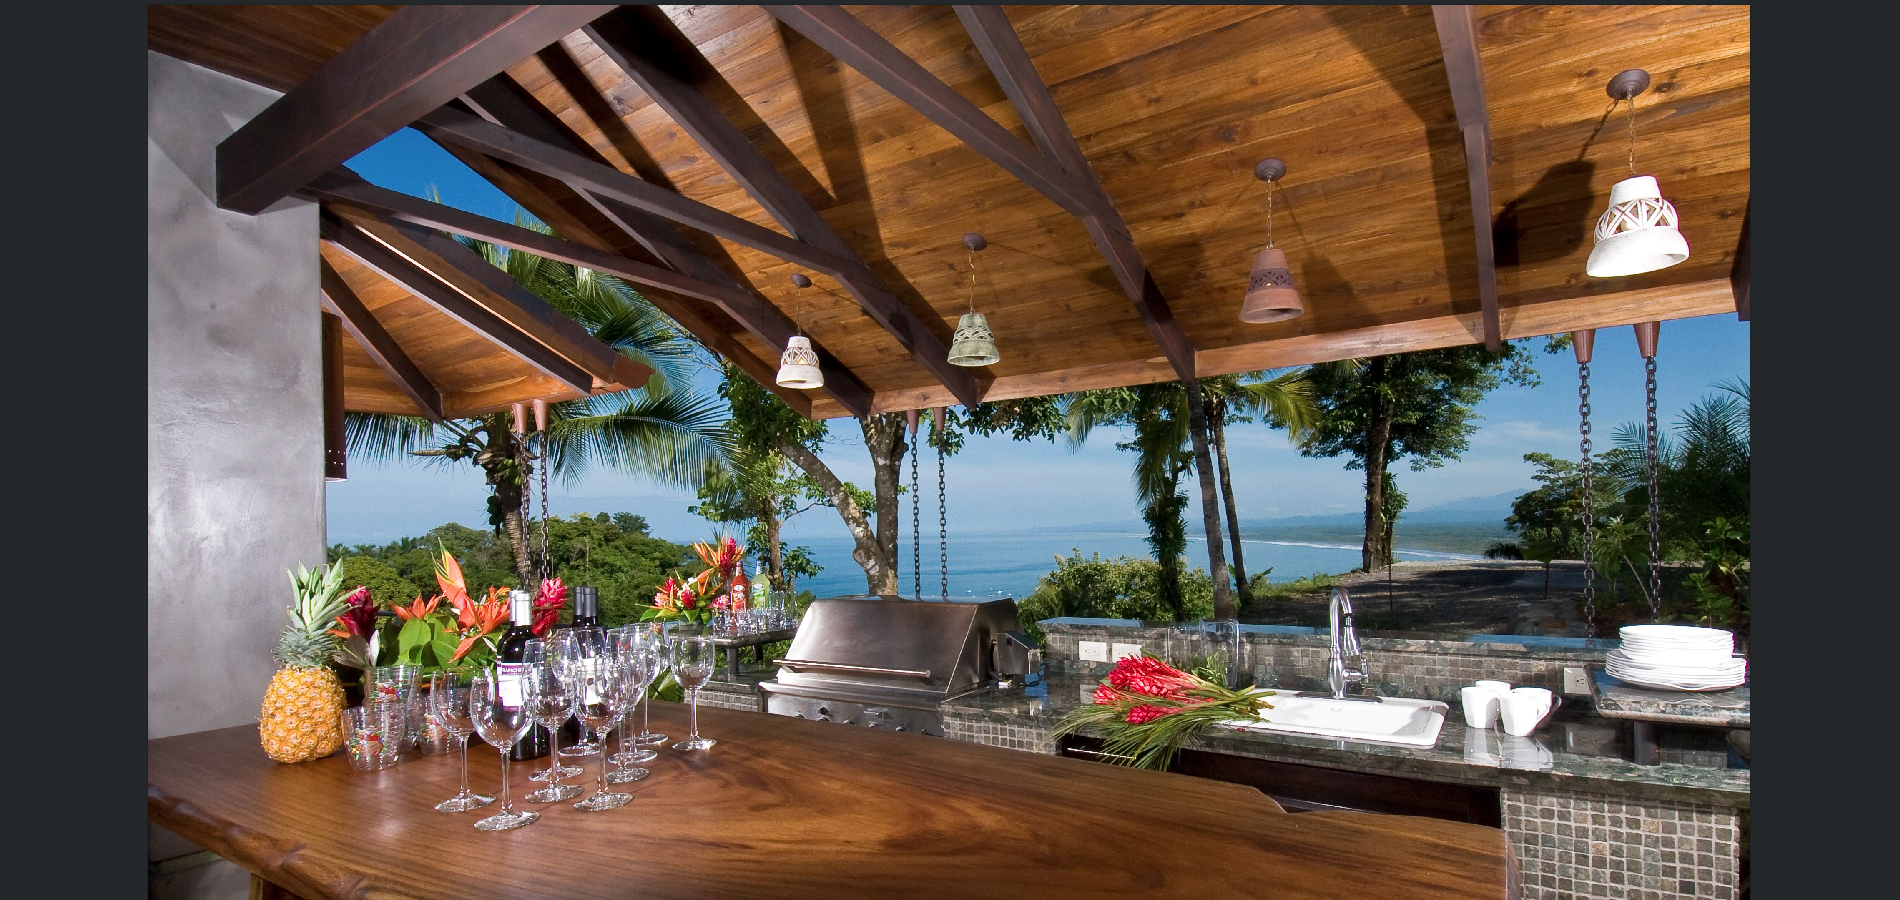 The Kosher Luxury Costa Rican Vacation You Need!